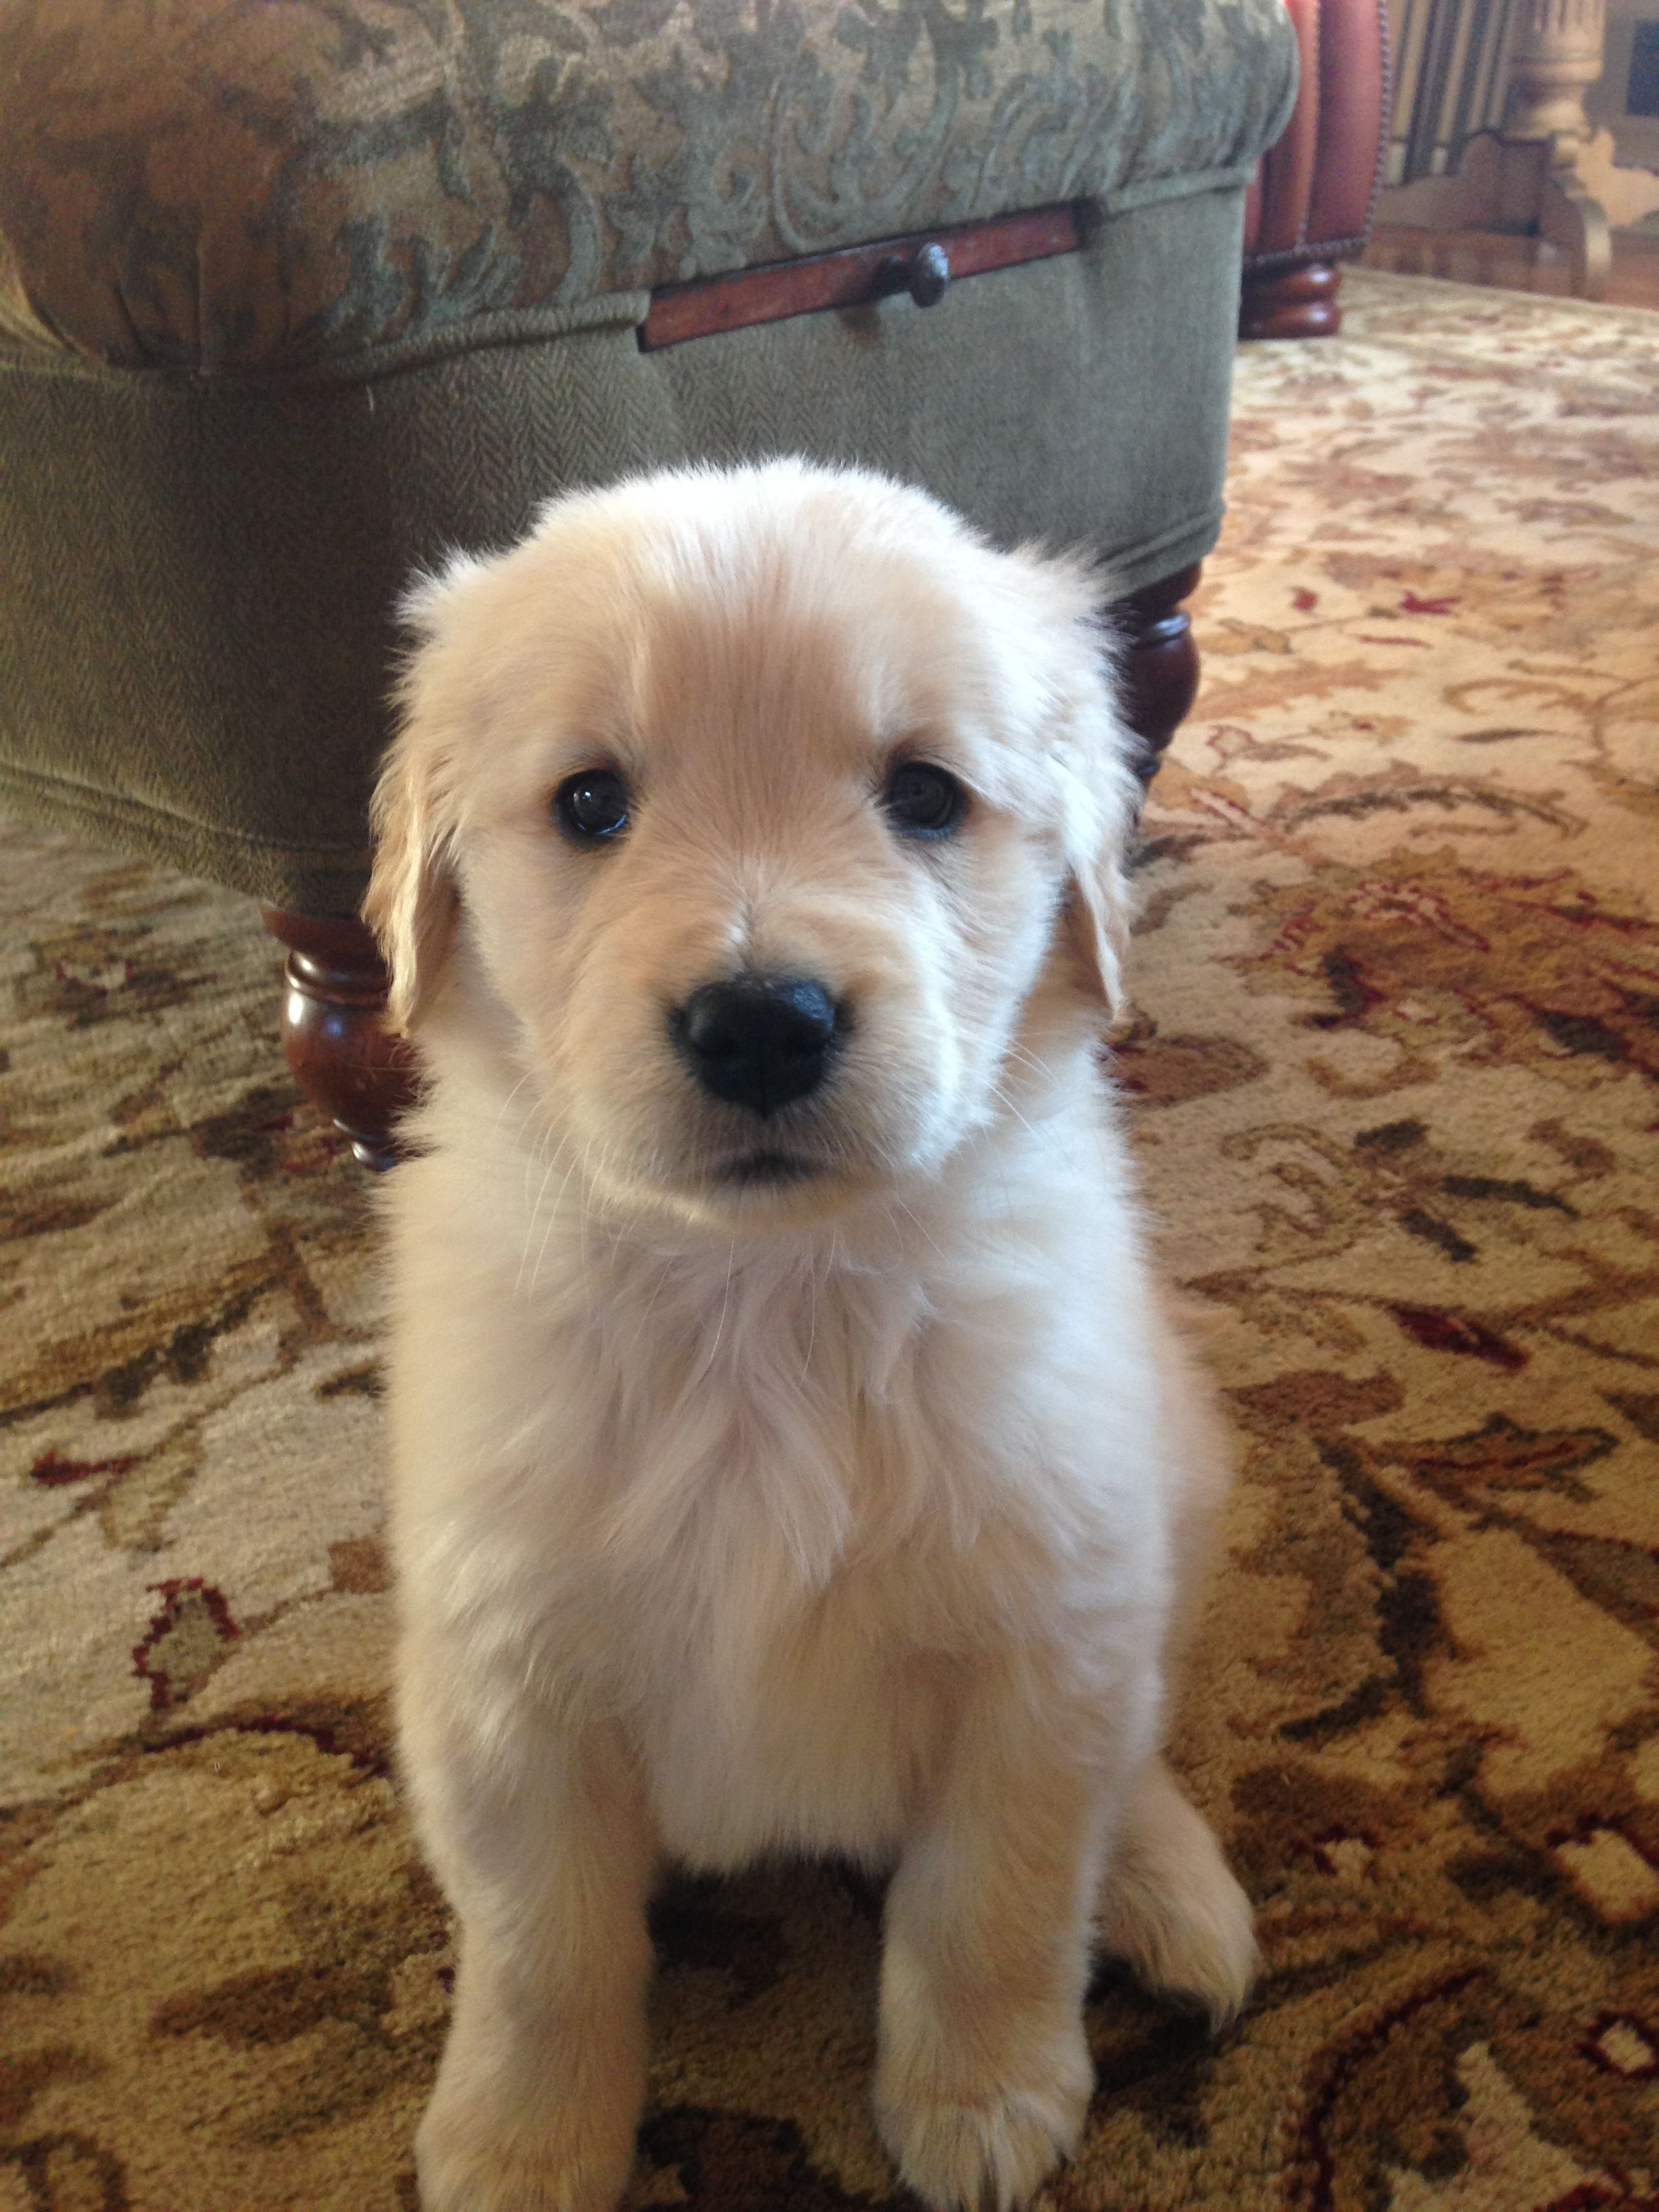 Most Photogenic Puppy You Ll Ever See Puppies Golden Dog Cute Dogs